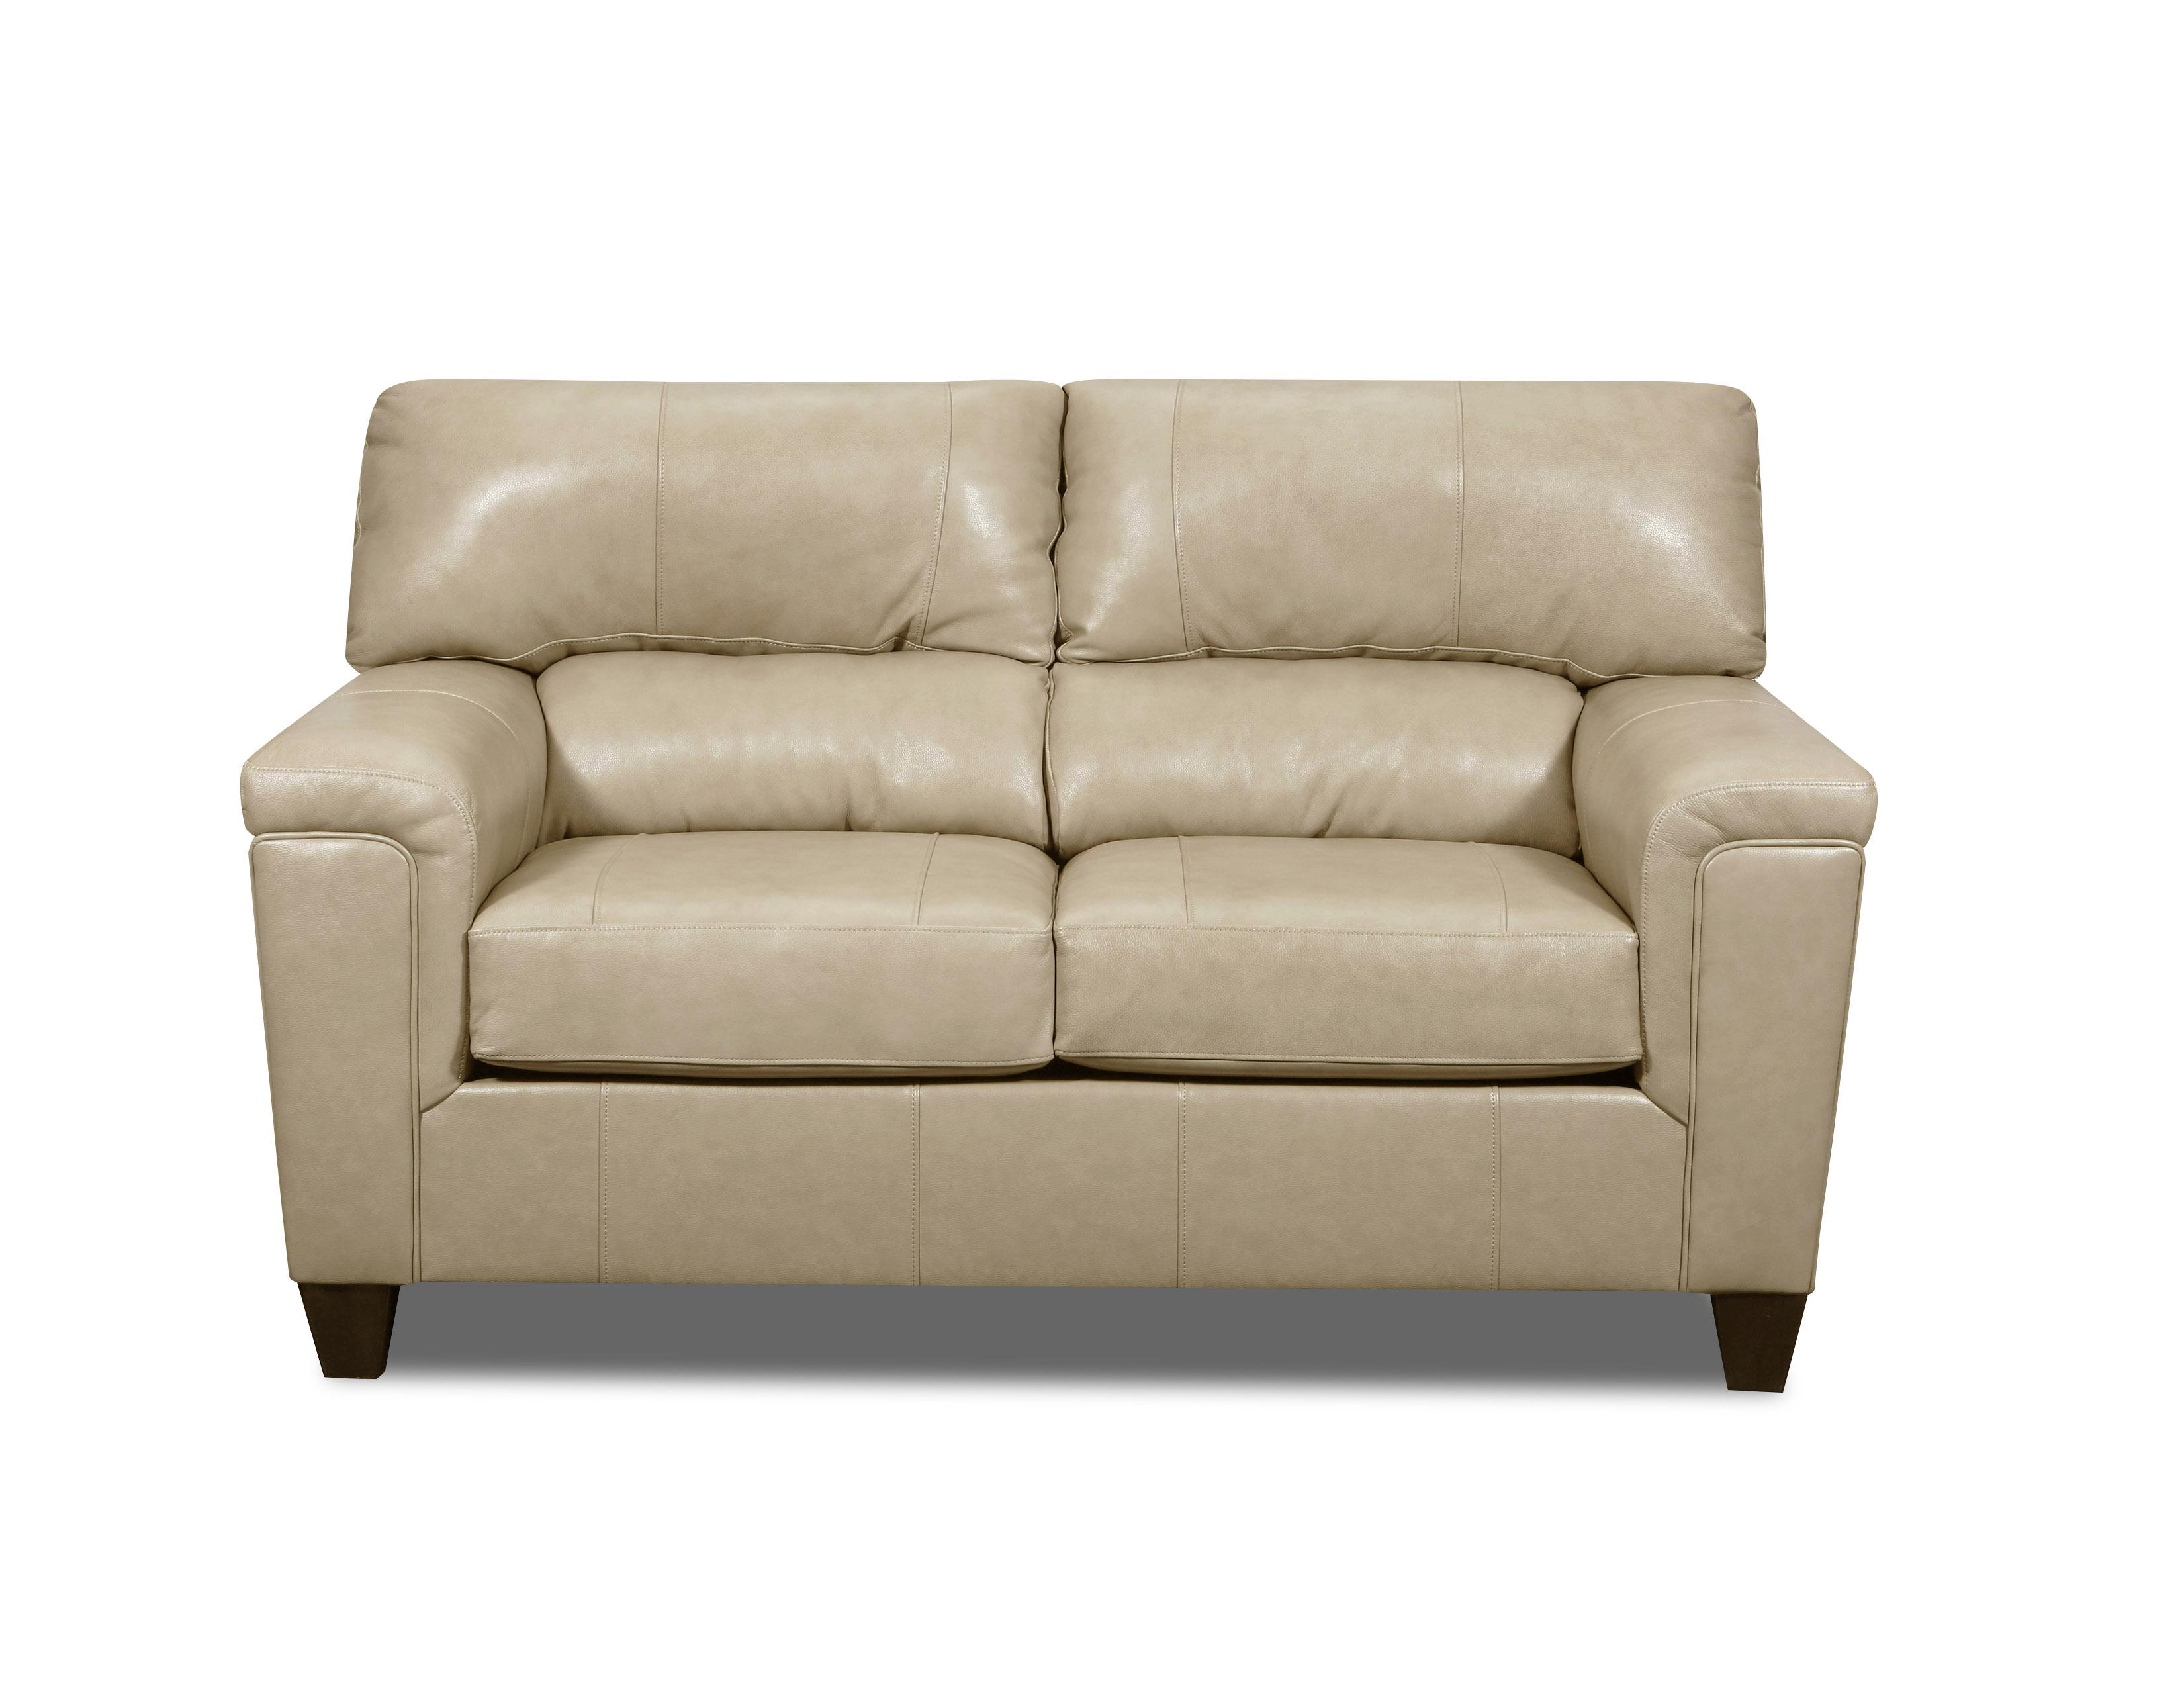 Lane Furniture Soft Touch Putty Leather Loveseat